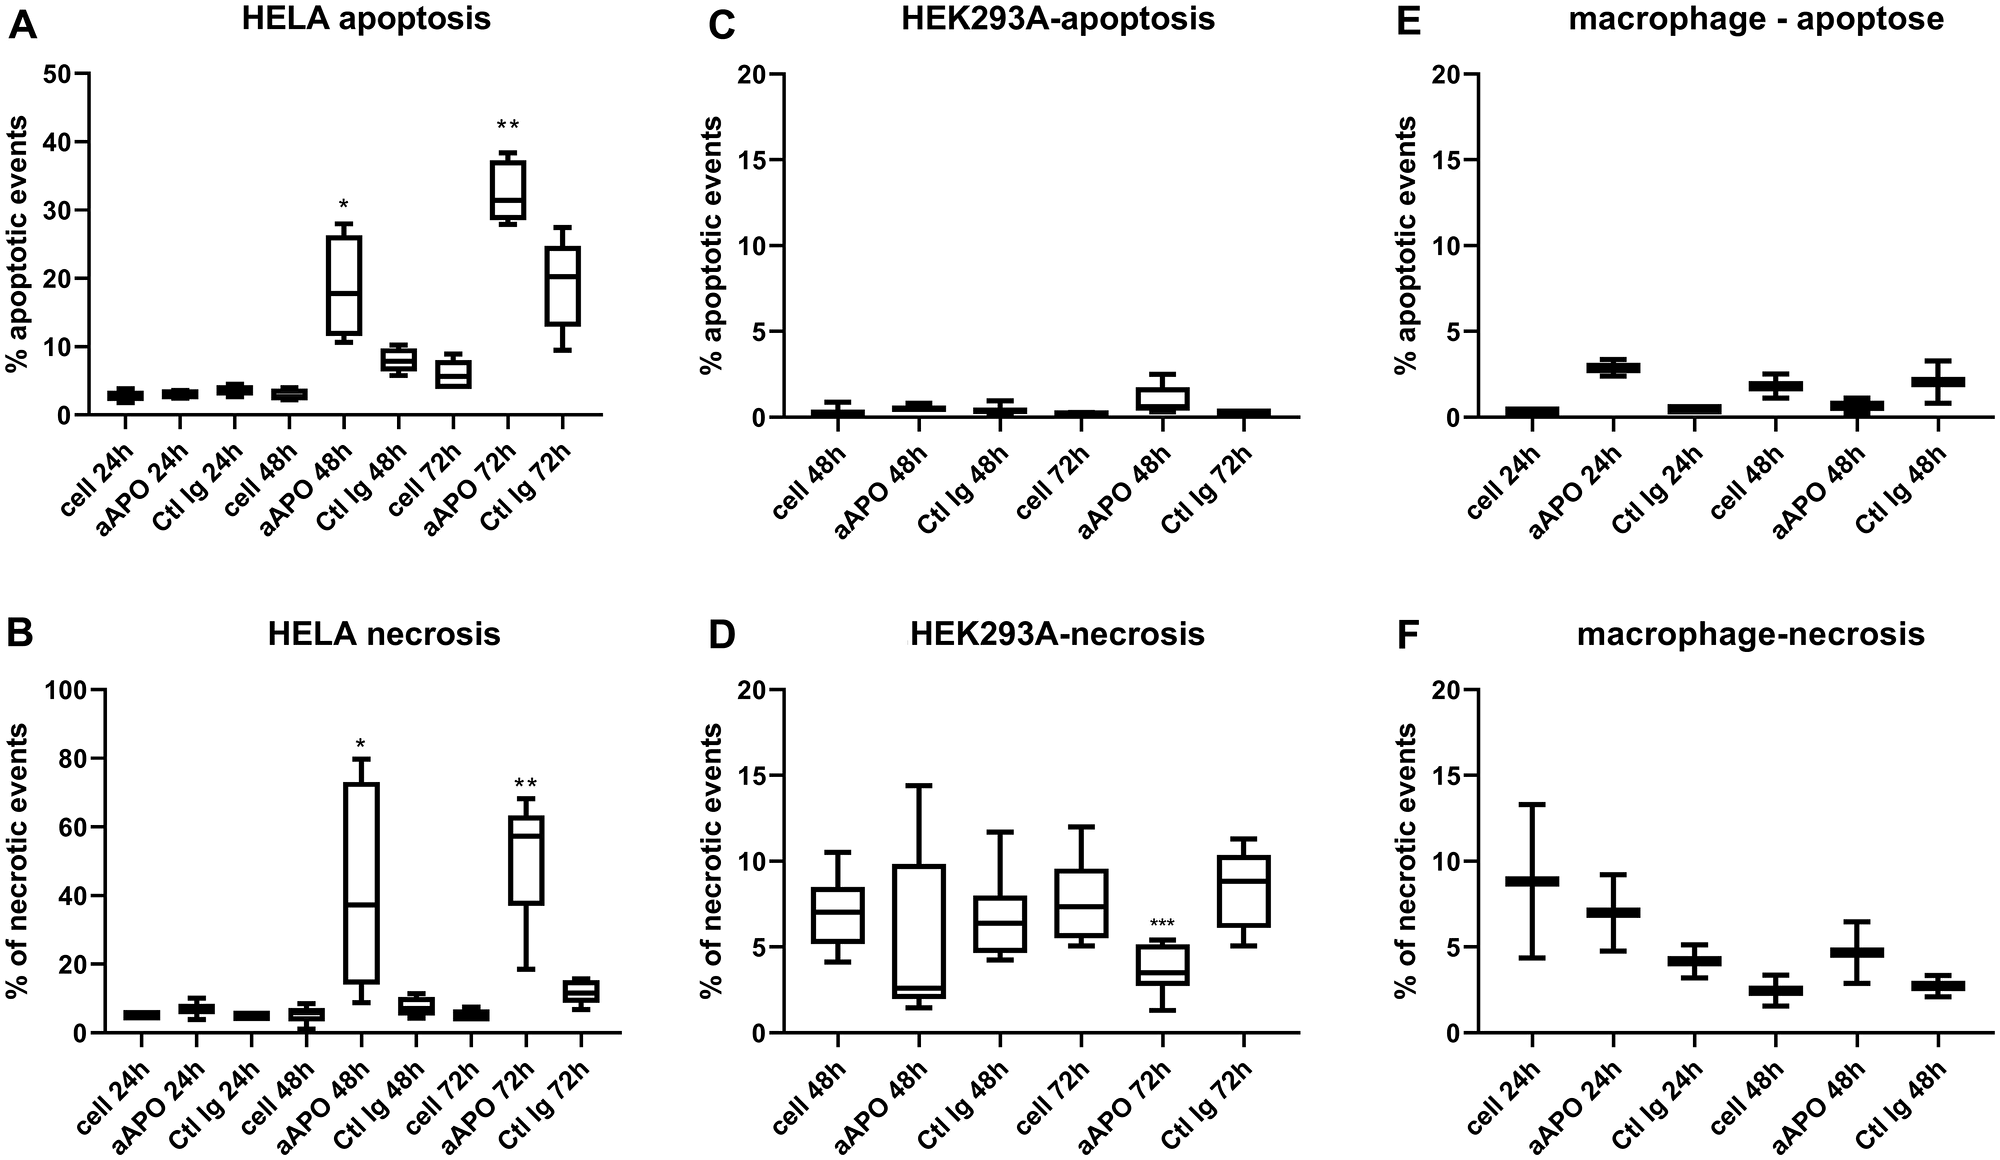 Apoptosis and necrosis quantification after incubation of Hela, HEK293 and macrophages with anti-apoA-1 IgGs.